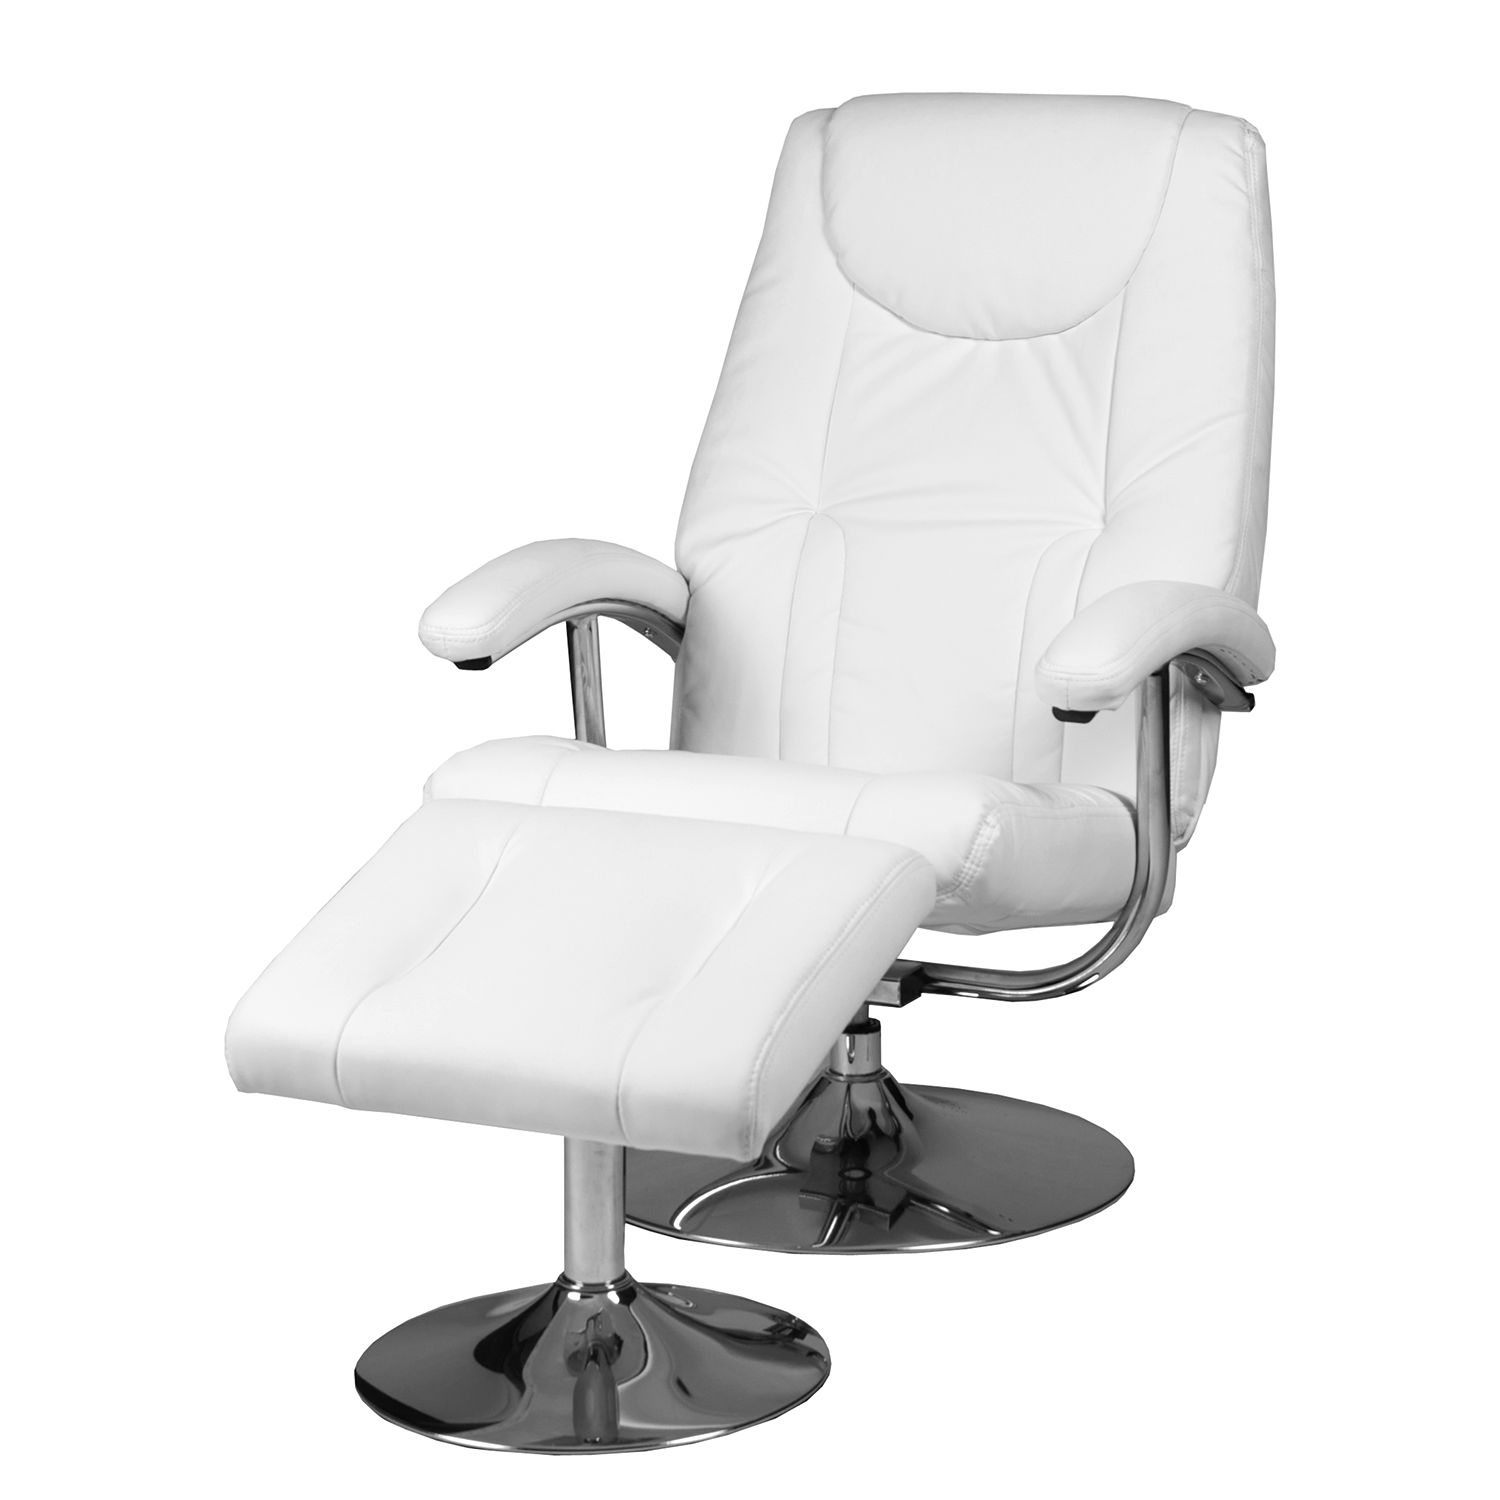 goedkoop Relaxfauteuil Korfu met hocker kunstleer Wit Duo Collection